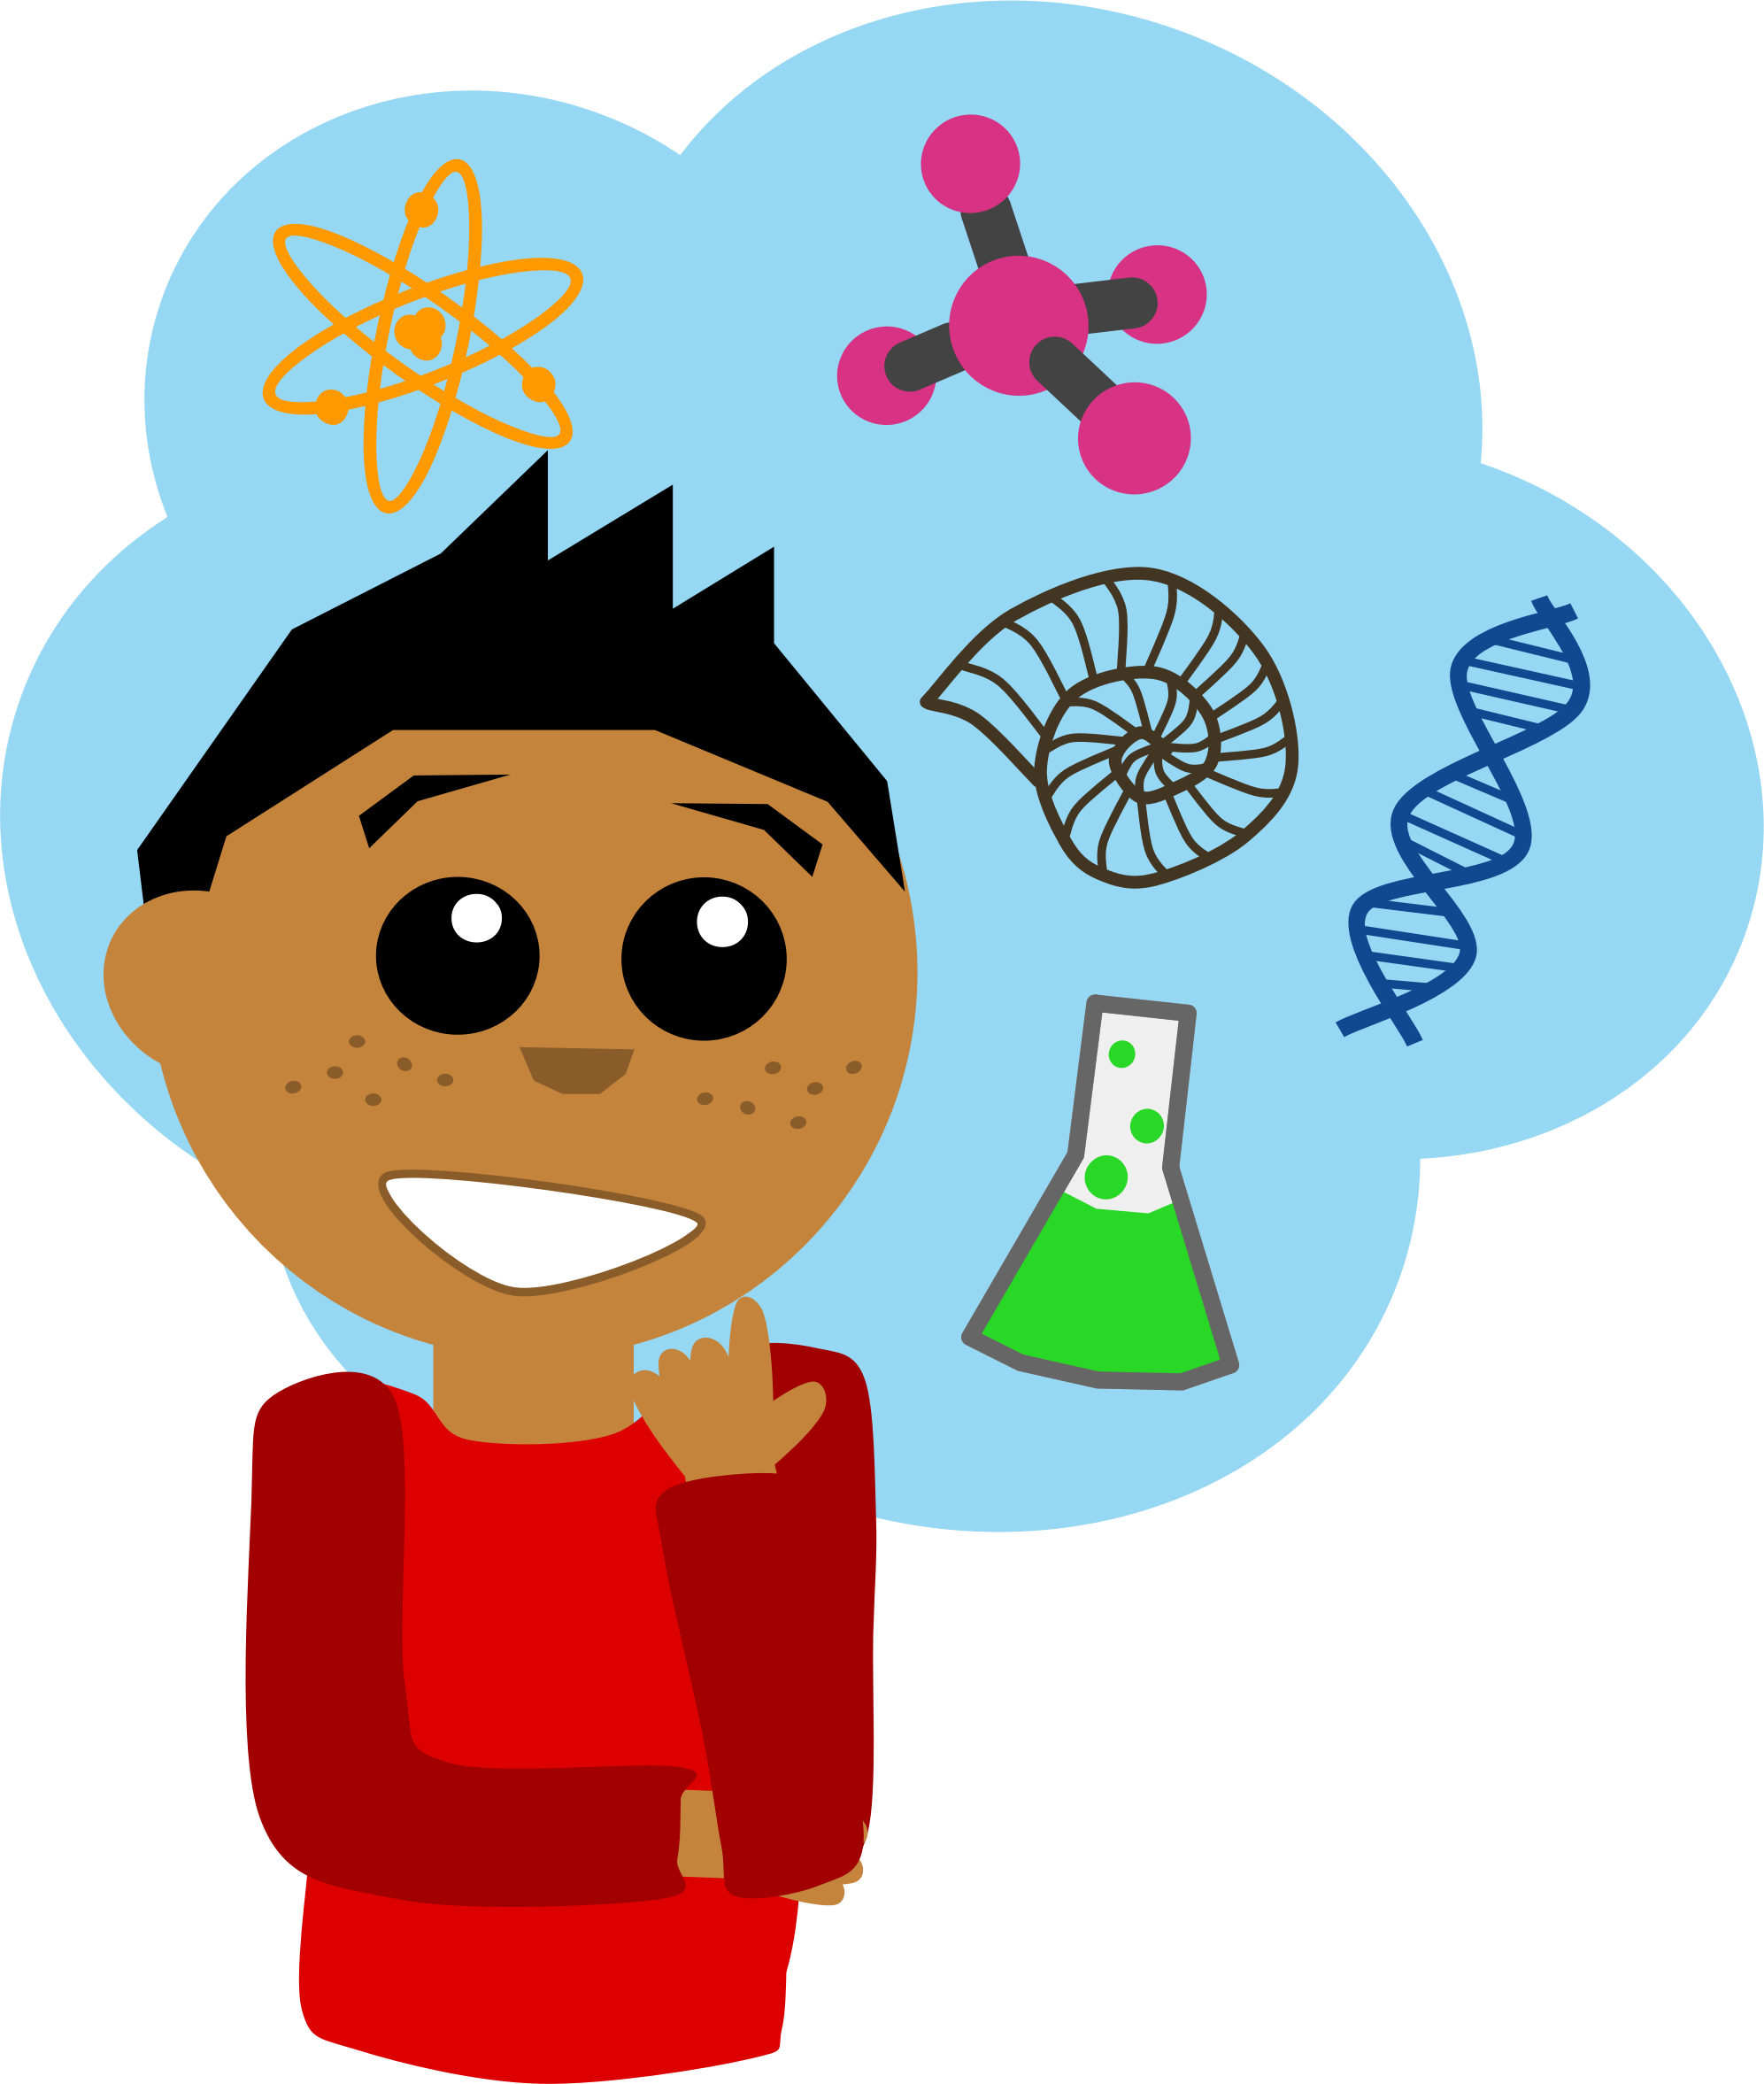 Scientific clipart #4, Download drawings